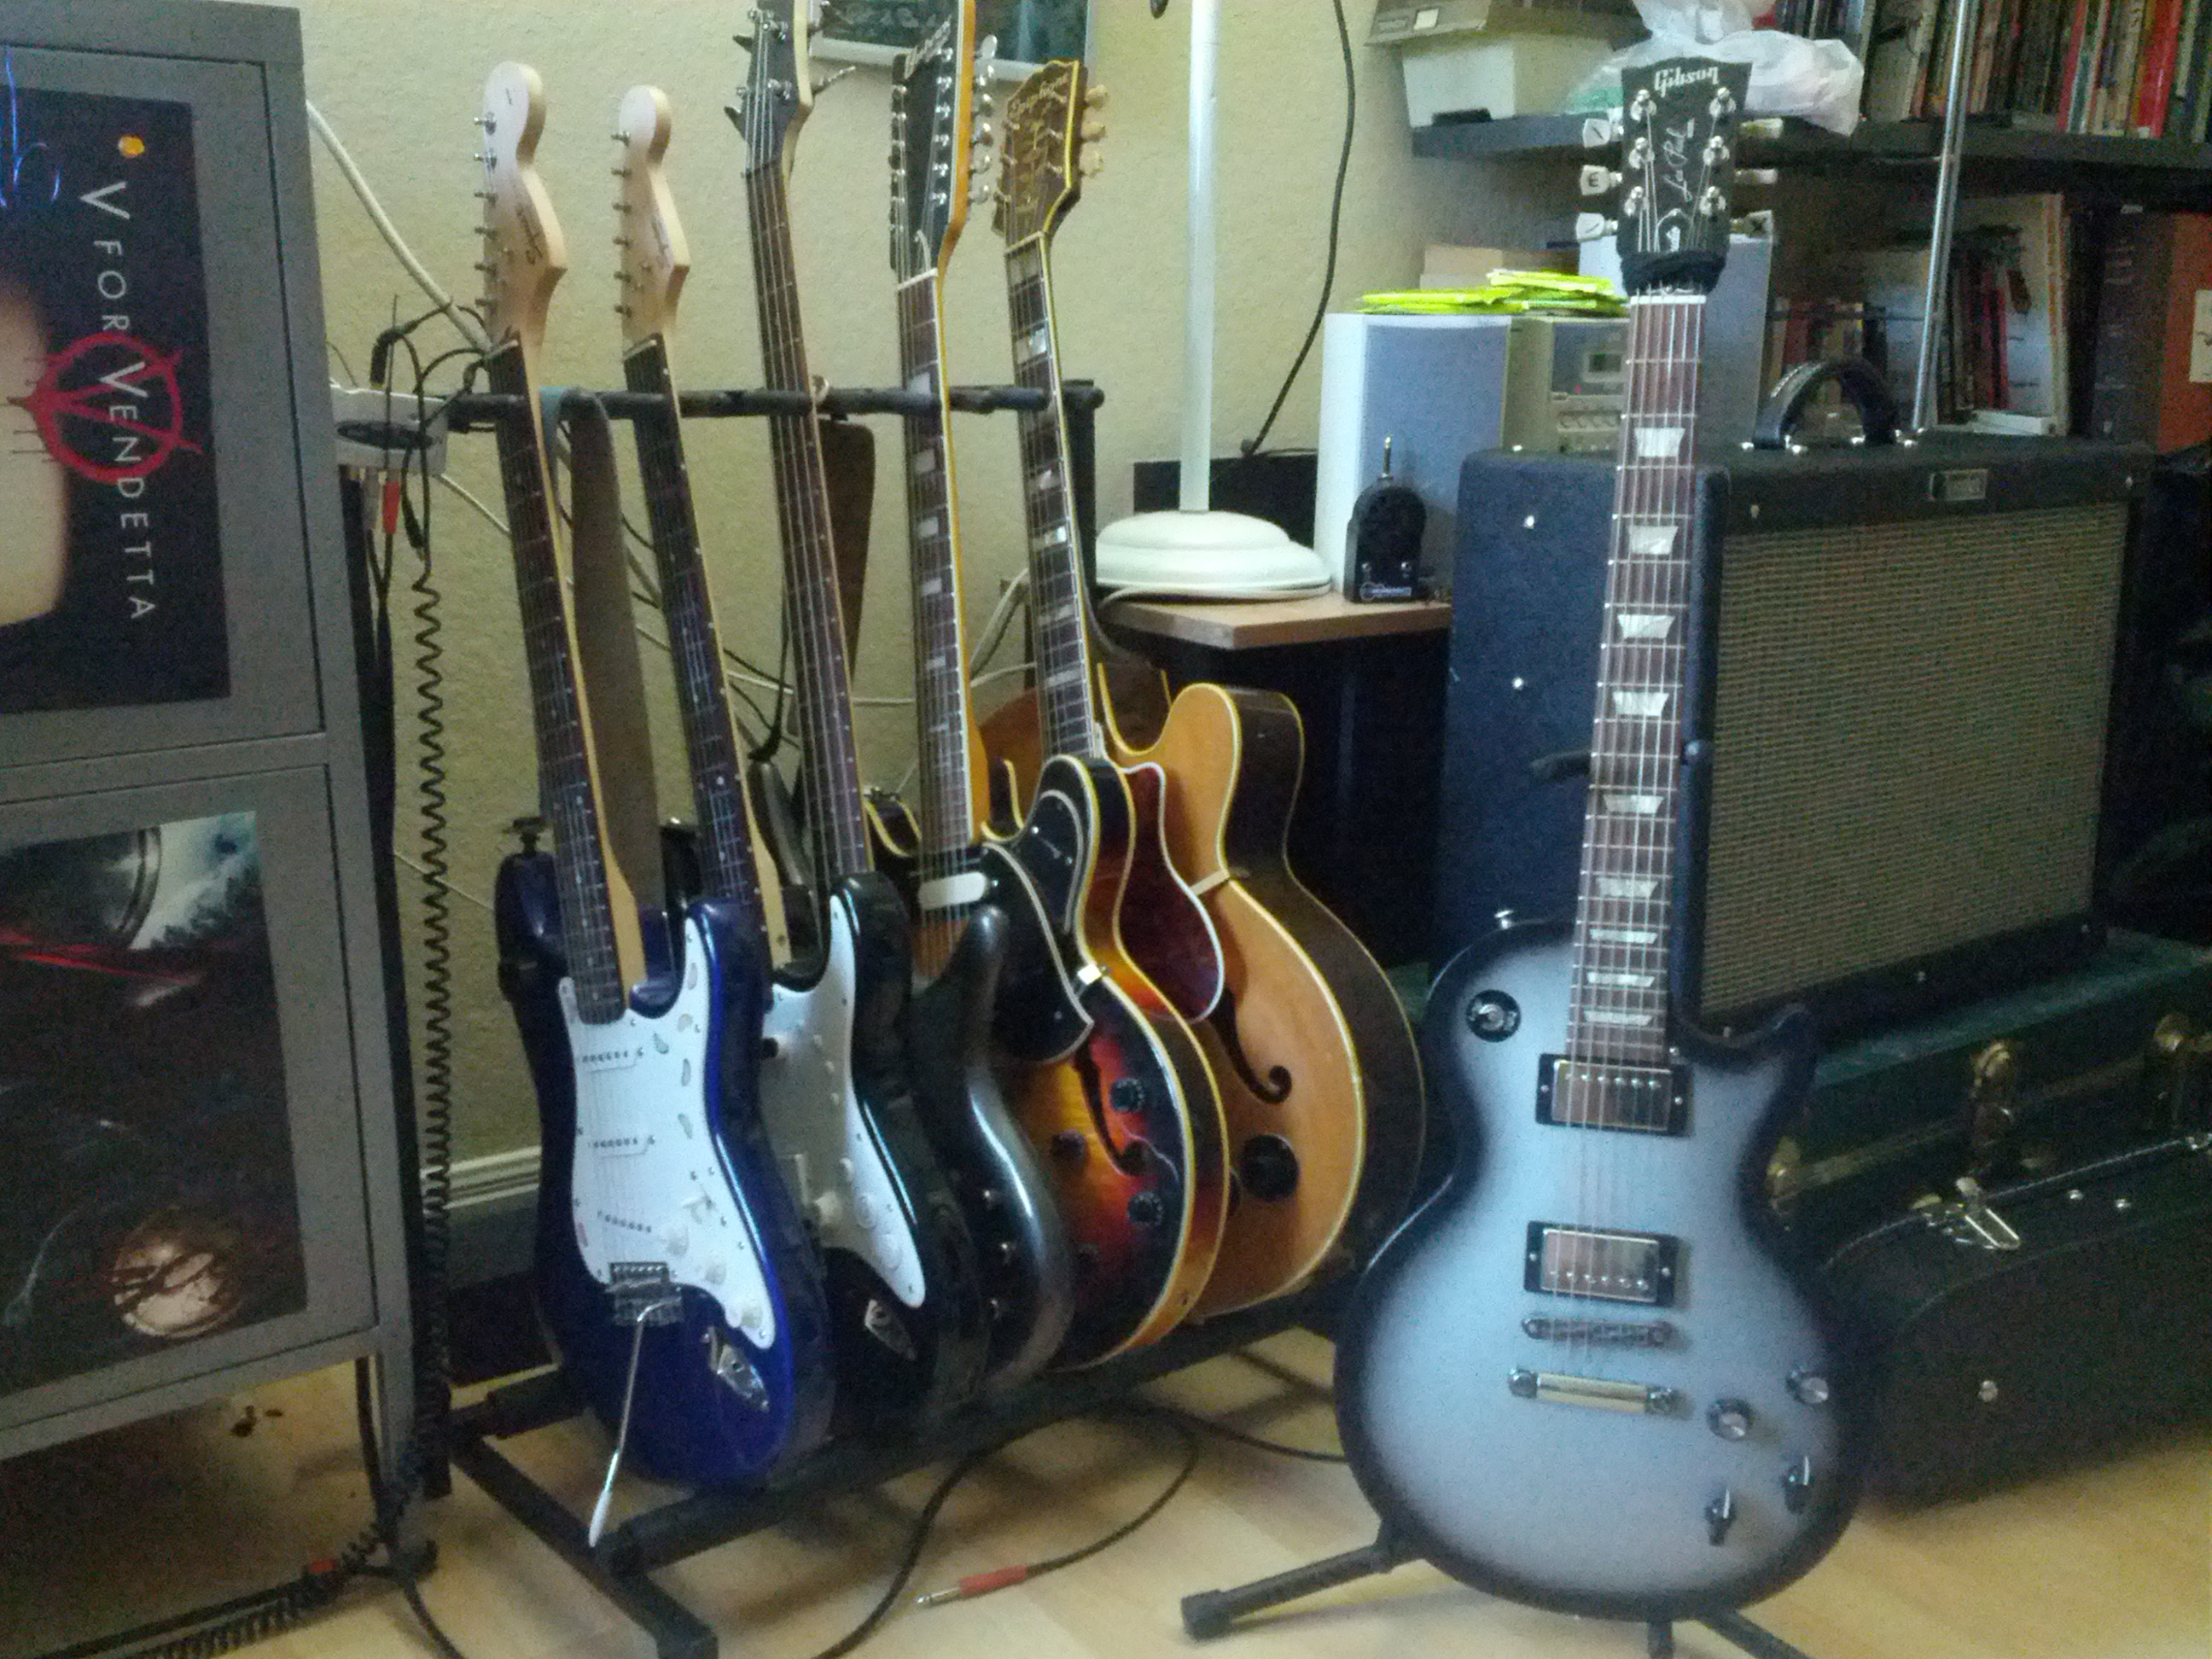 file gibson les paul studio silverburst along with squier